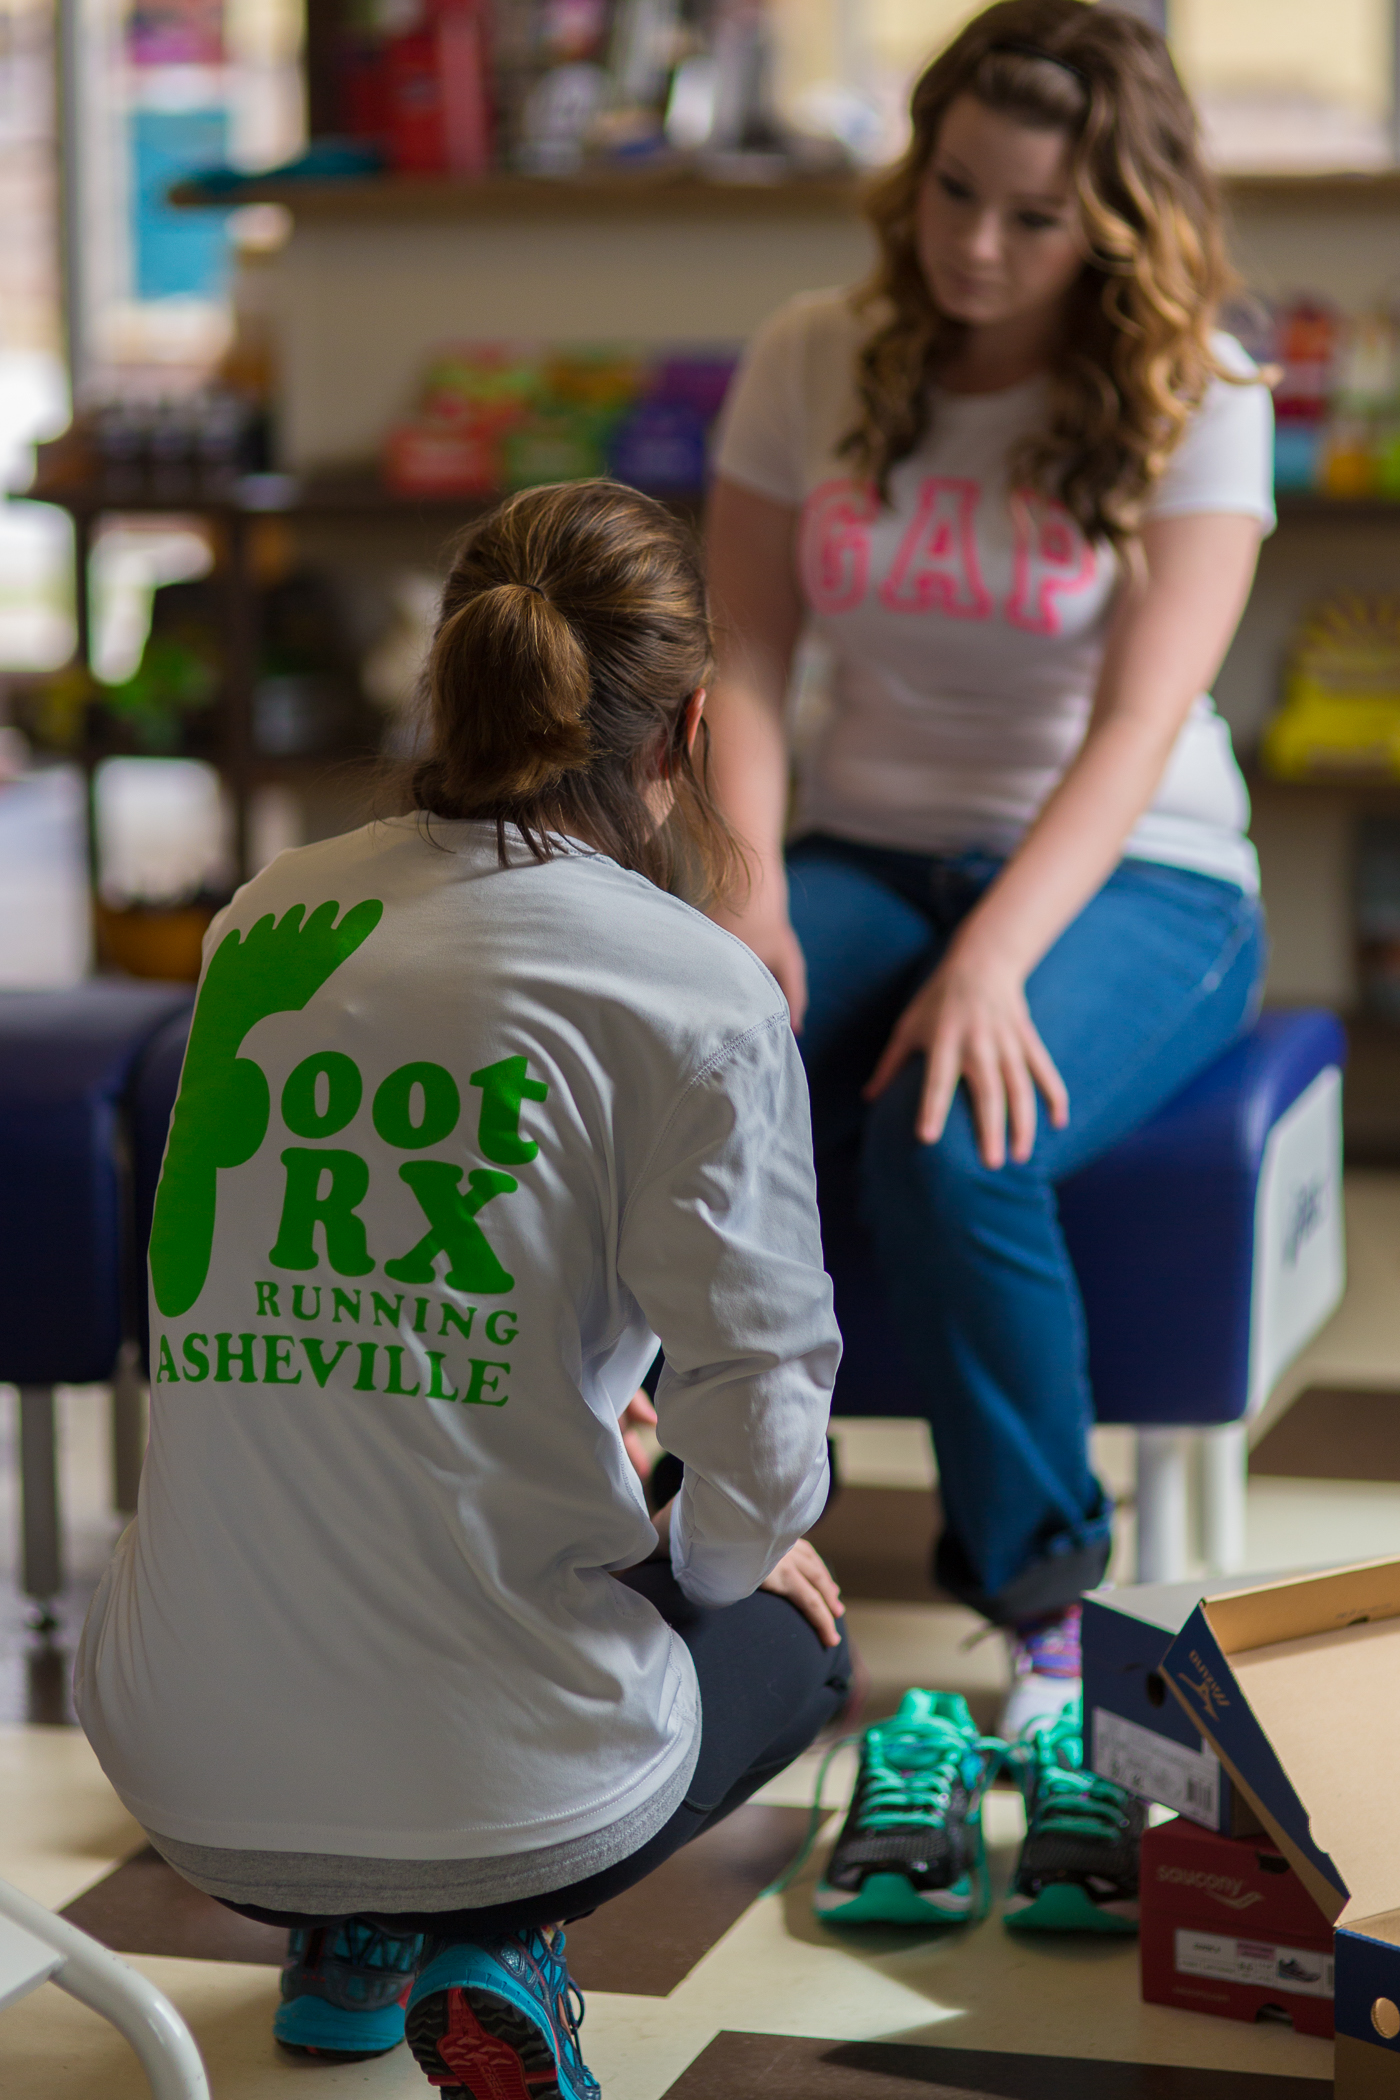 Foot rx asheville footer3 local flavor avl visit explore shop asheville